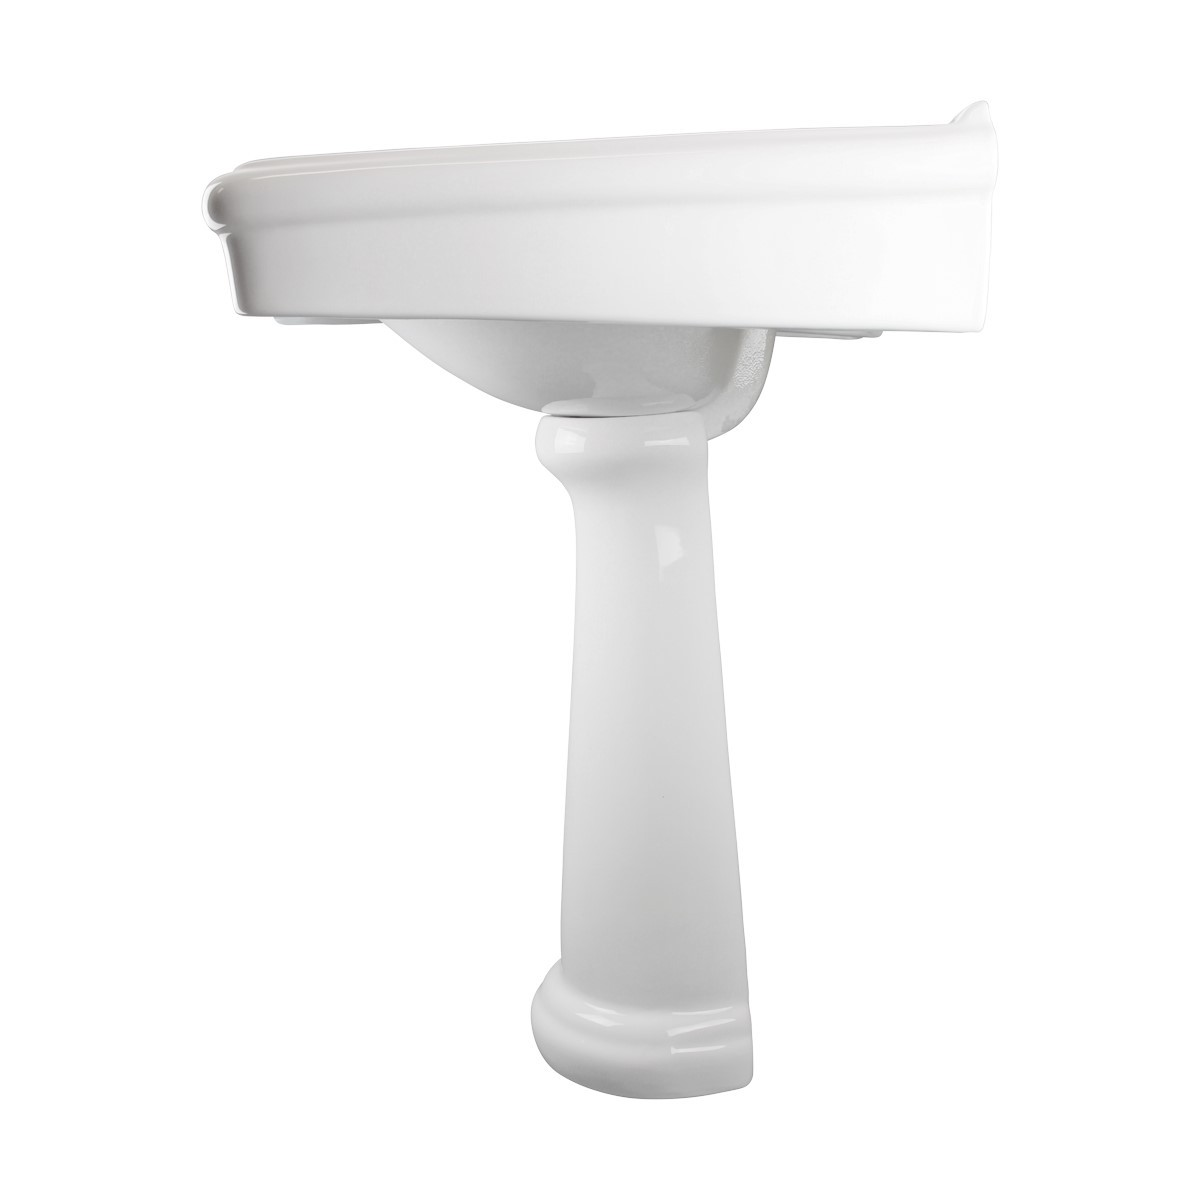 White Widespread Pedestal Sink with Faucet Holes and Overflow Widespread Pedestal Sink Modern Bathroom Pedestal Sink Classic Bathroom Sinks